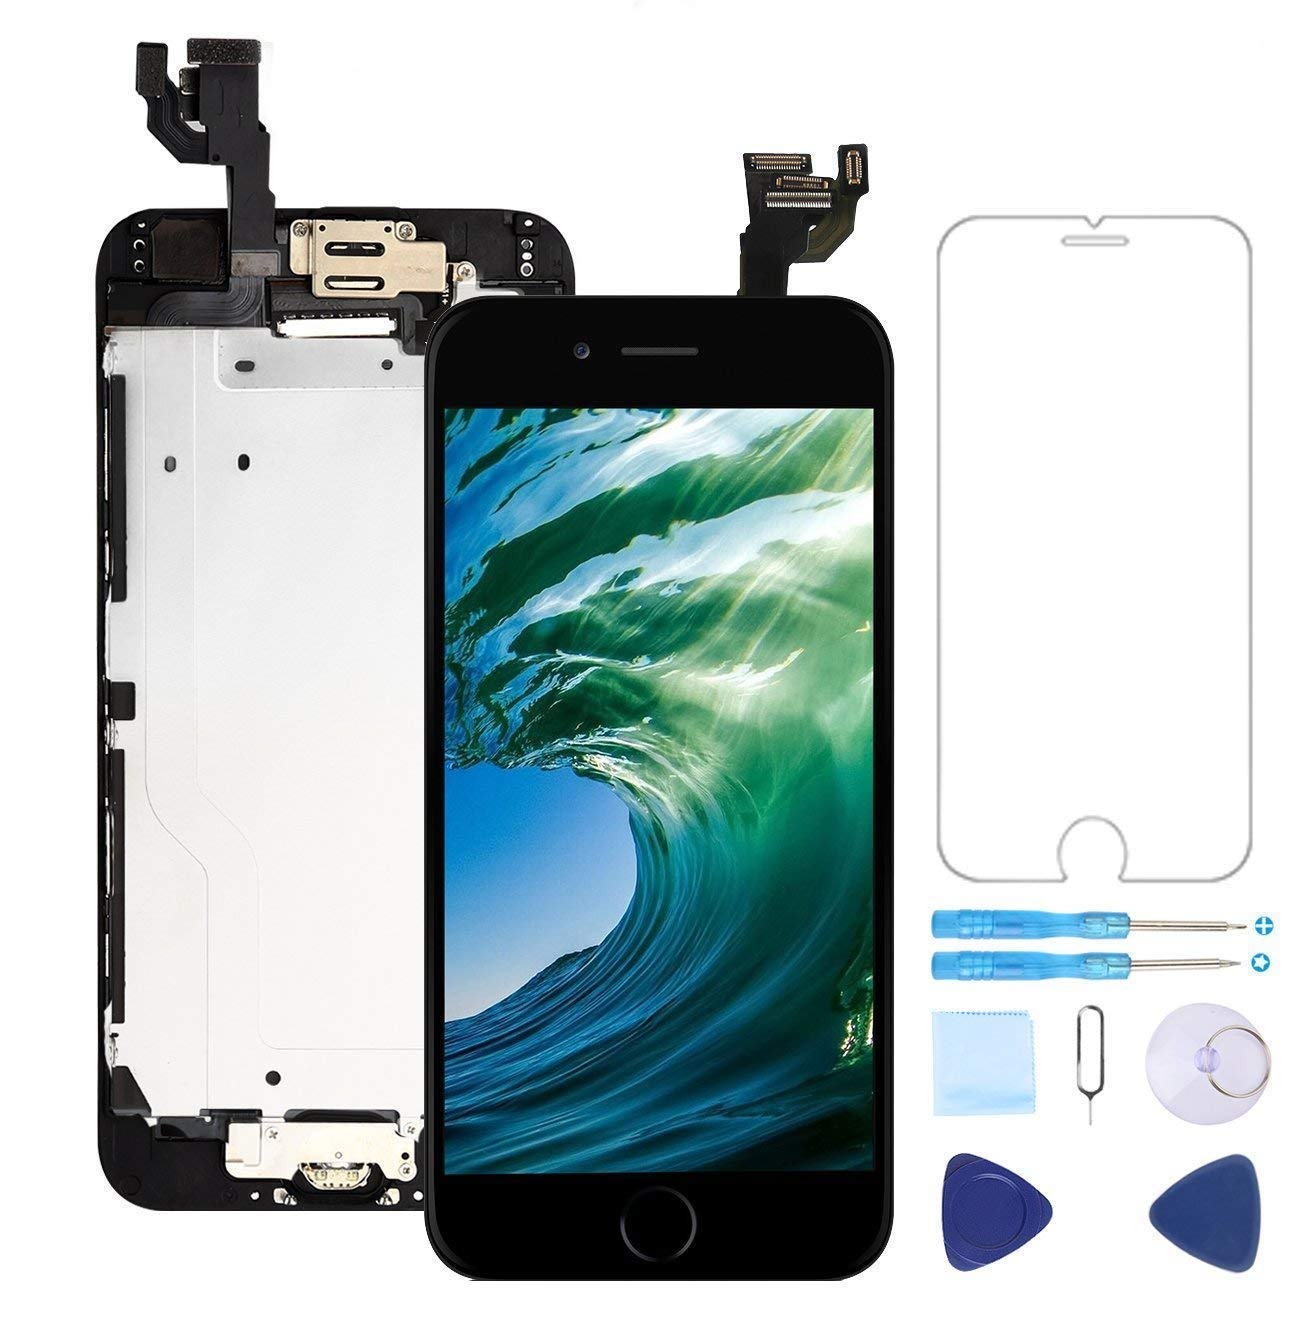 Screen Replacement for iPhone 6 Plus Black 5.5'' LCD Display Touch Digitizer Frame Assembly Full Repair Kit,with Home Button,Proximity Sensor,Ear Speaker,Front Camera,Screen Protector,Repair Tools by Topscreen